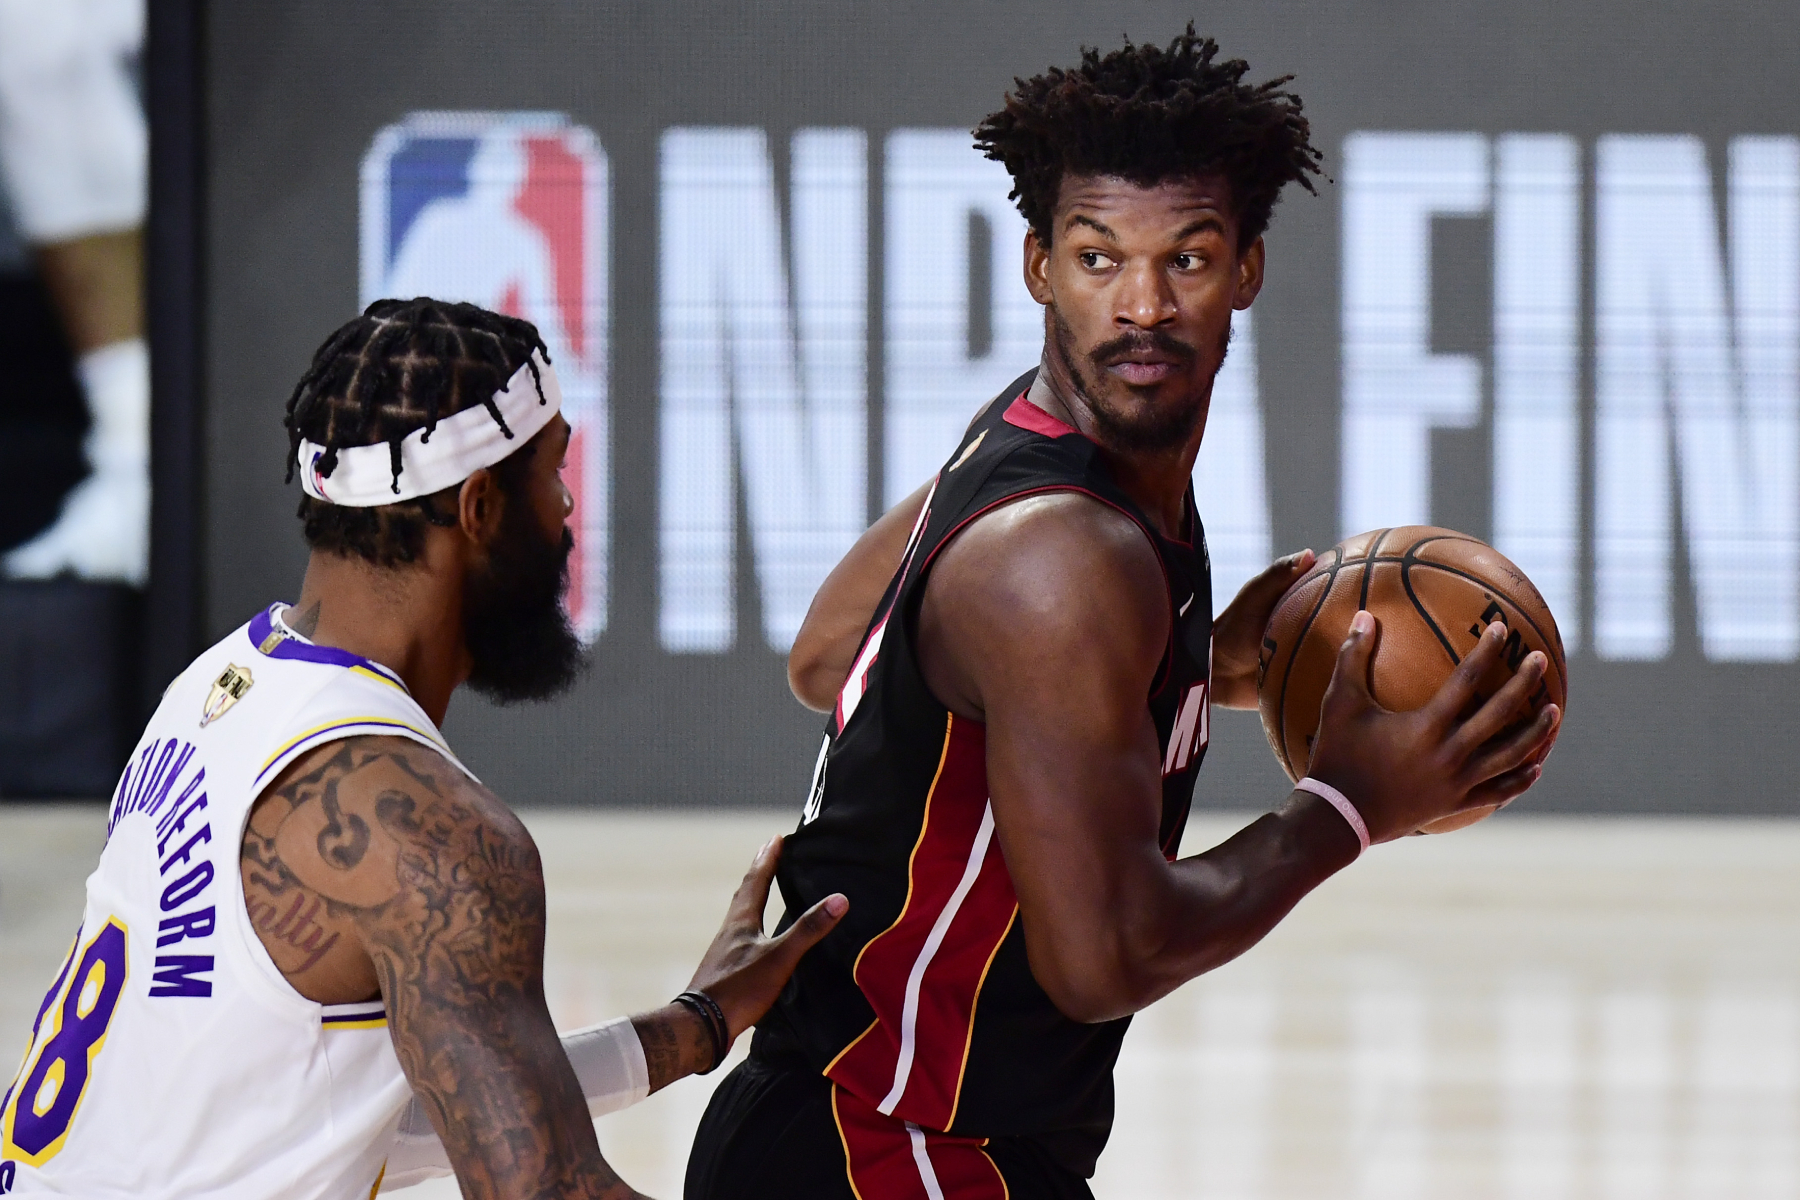 Jimmy Butler became a legend during the NBA Finals. After the Heat ultimately lost to the Lakers, Butler sent a strong message to the league.